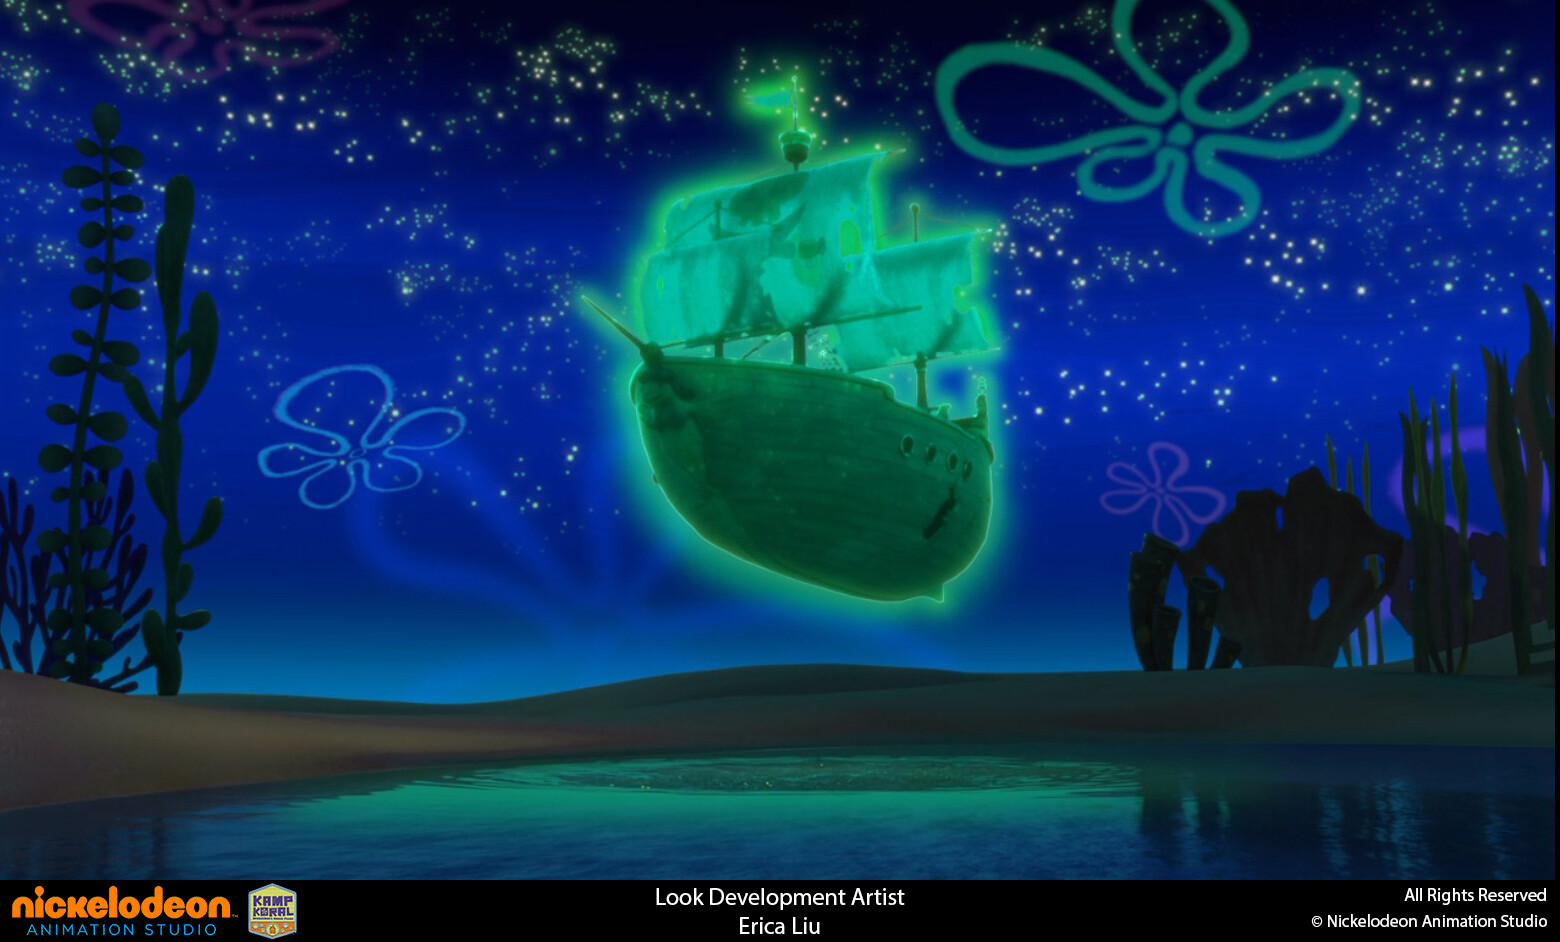 Responsible for look development and texture of the Flying Dutchman's Ship